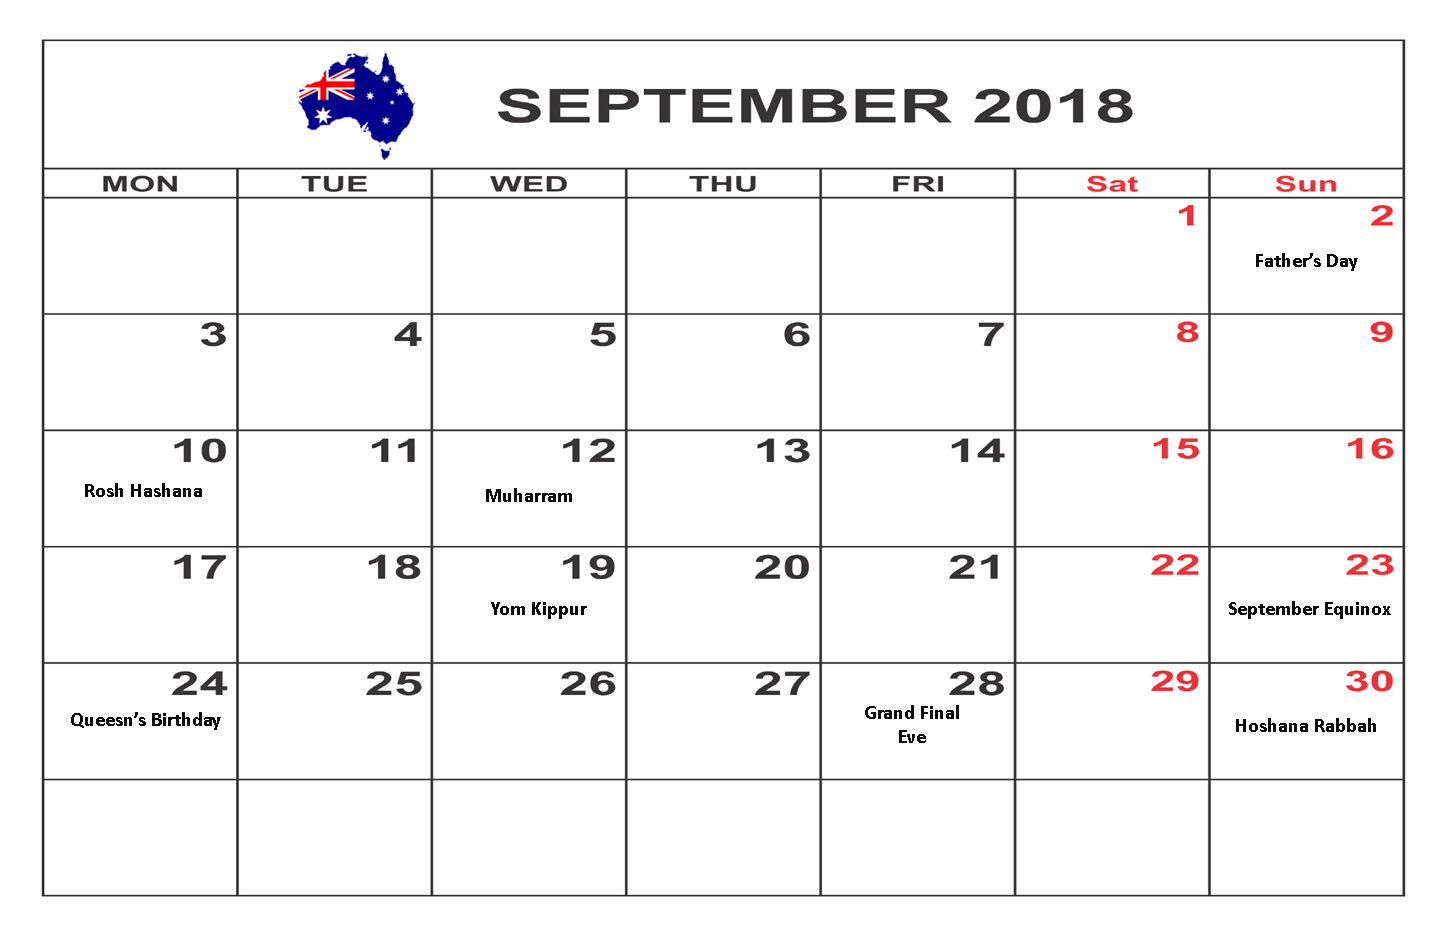 September 2018 Calendar With Australia Bank Holidays